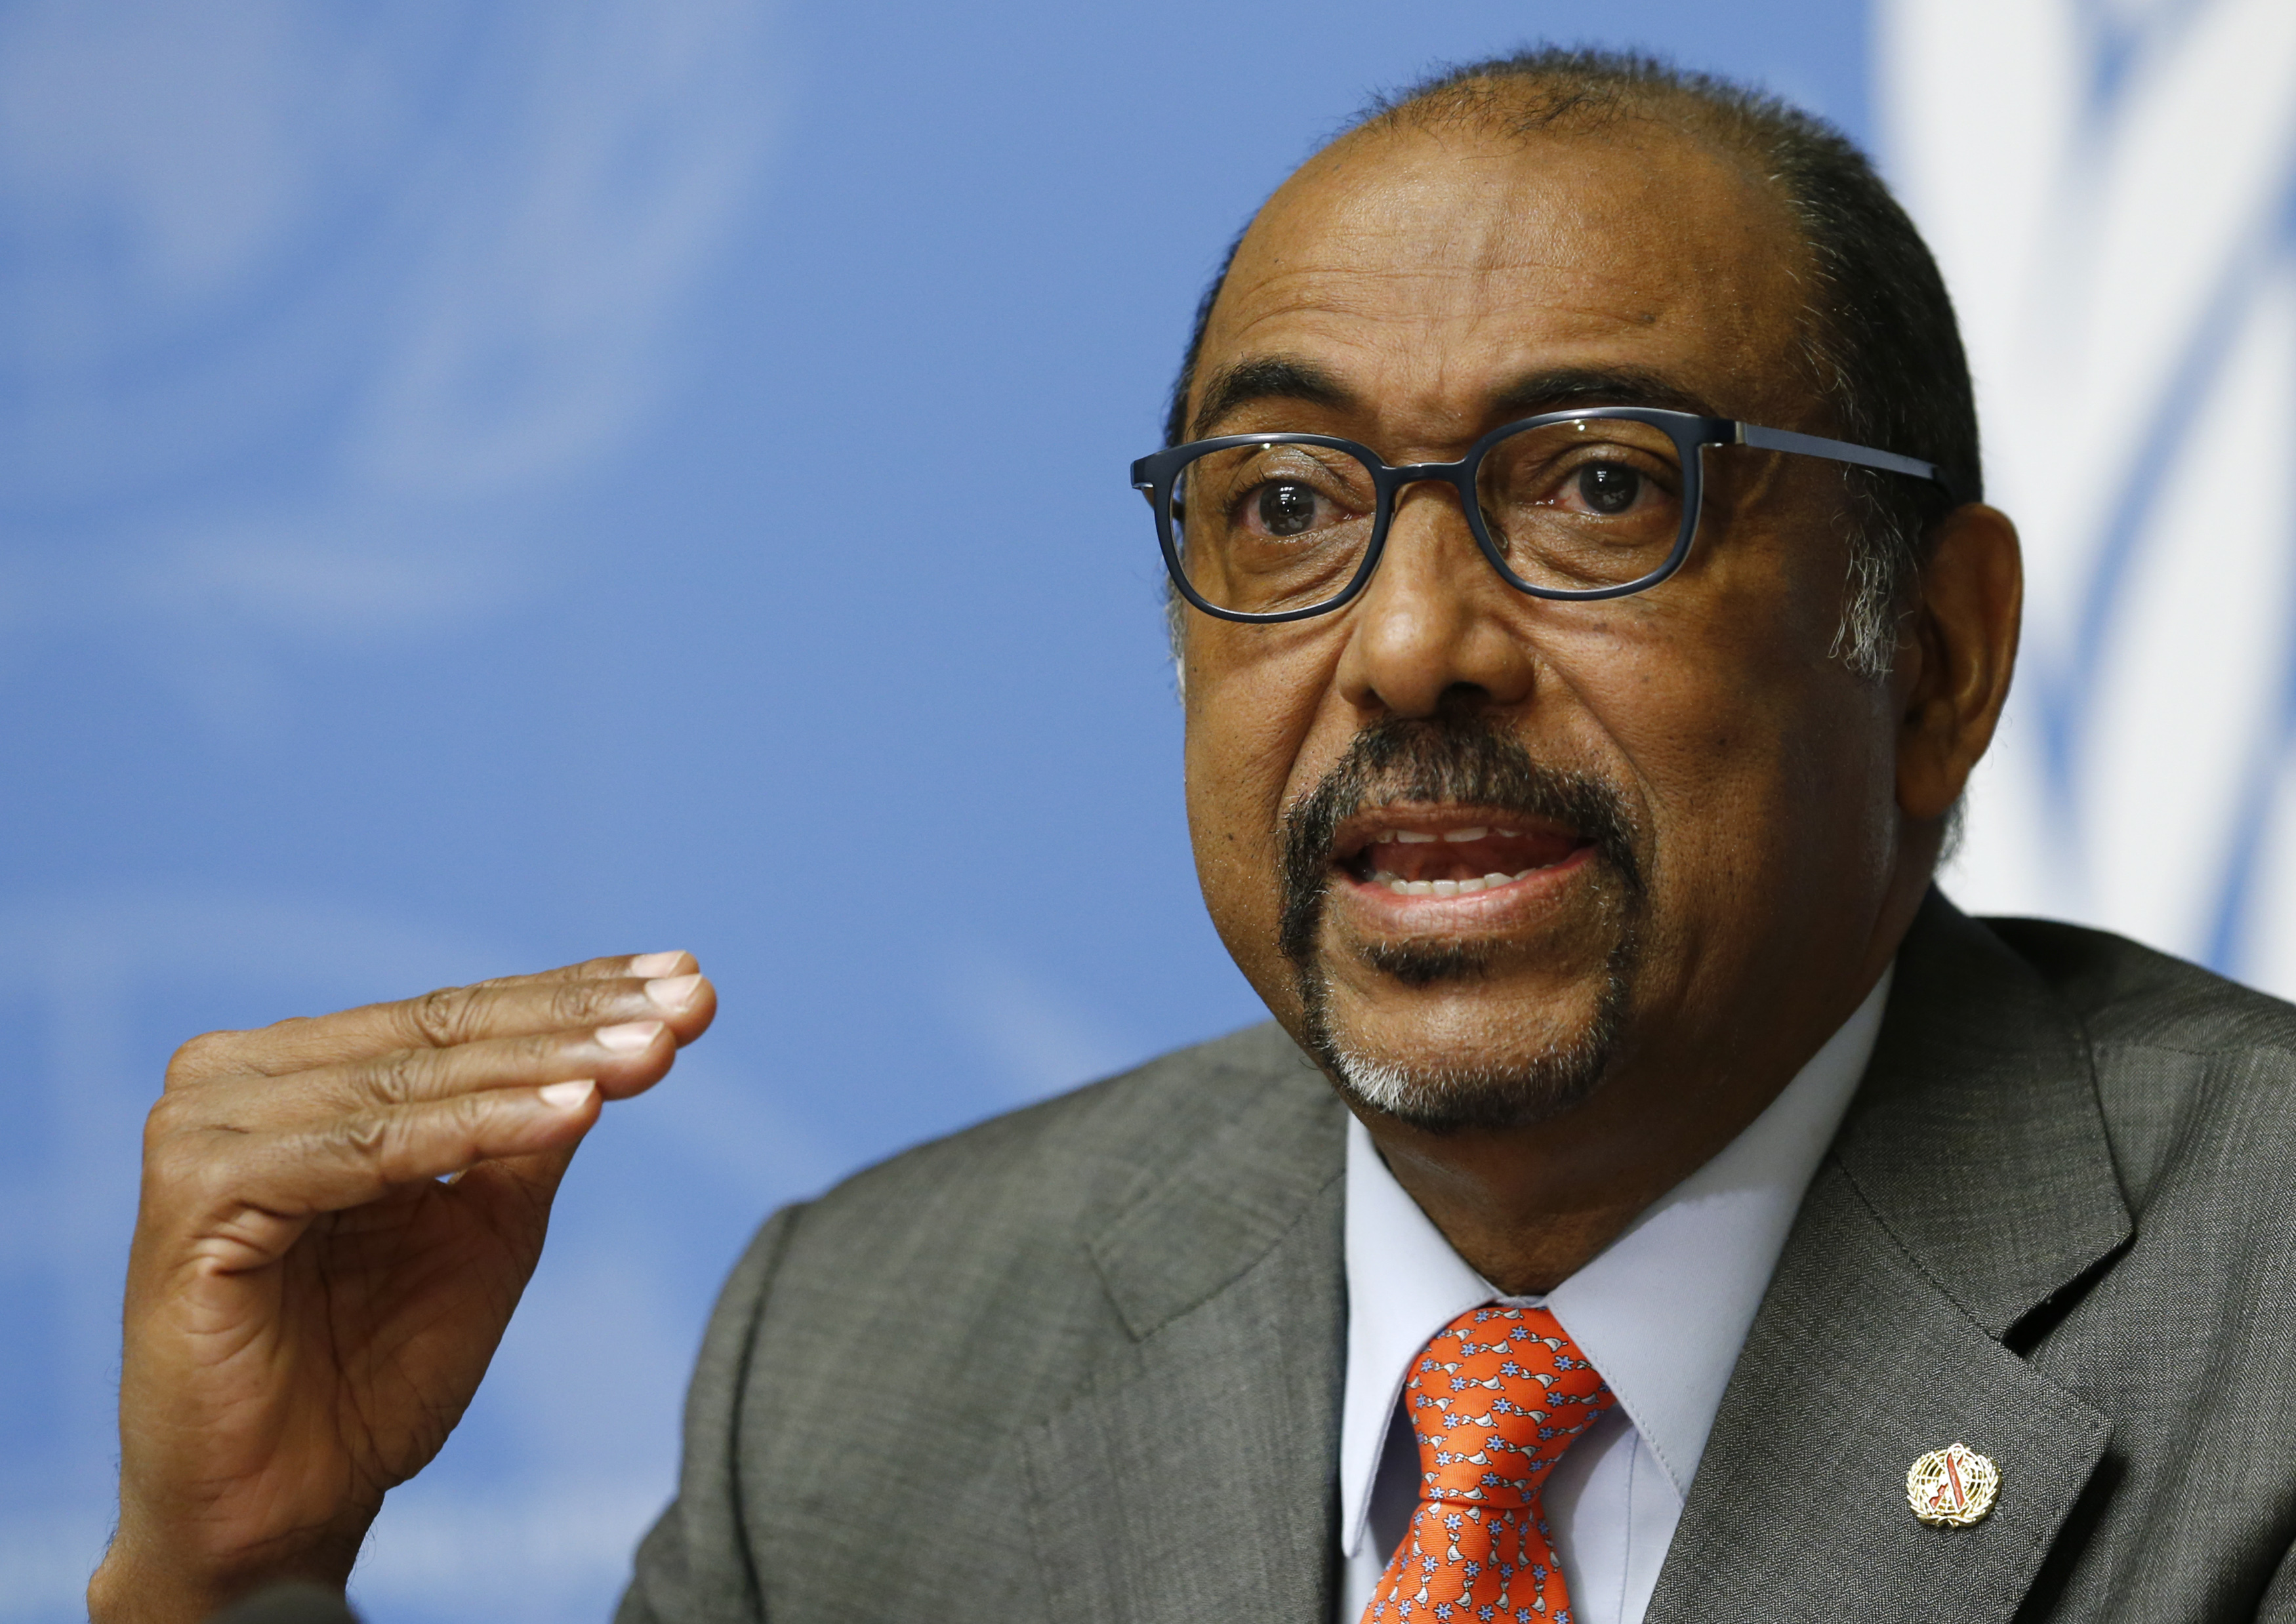 In an interview with PRI's The World, UNAIDS director Michel Sidibe celebrated successes against the epidemic, but stressed the challenges faced by young women.